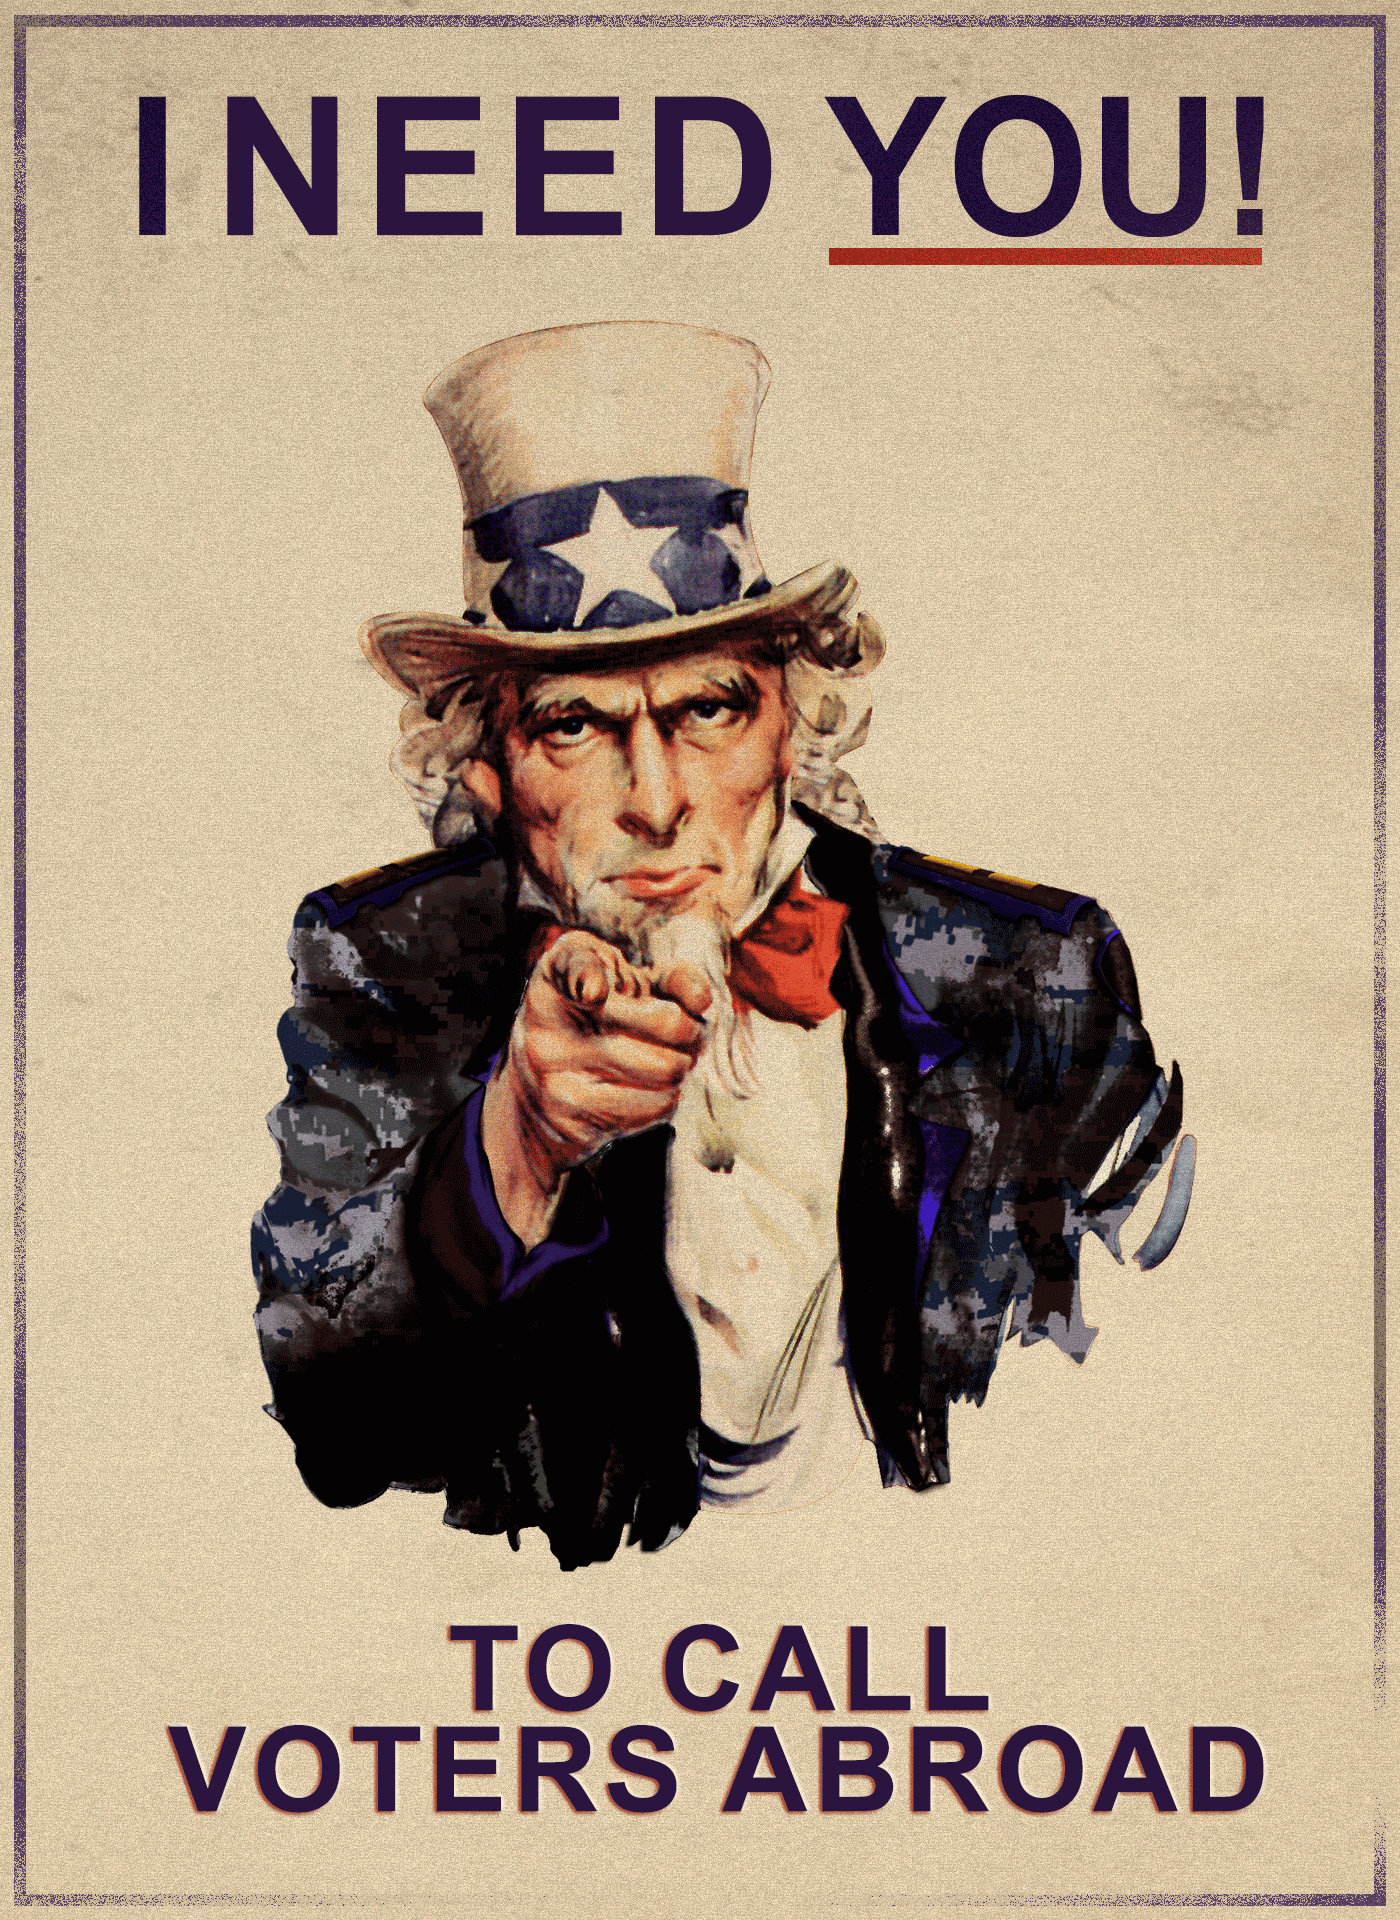 I want you to phonebank to call voters abroad